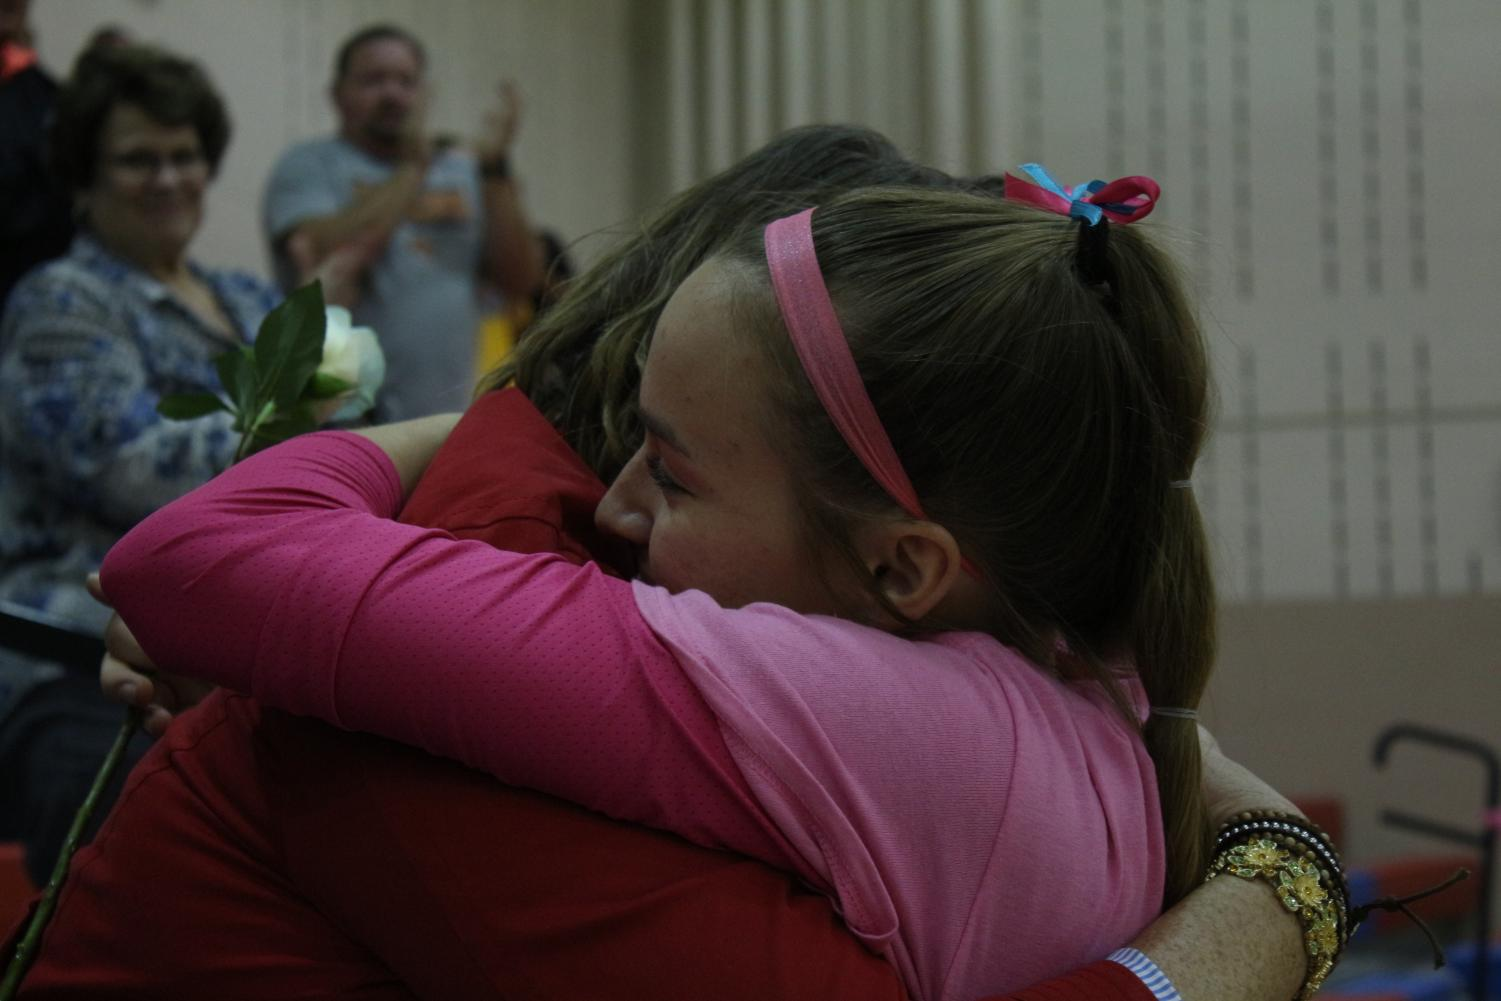 Teri Zanker and her mother share a moment during the Dig Pink Volleyball event.